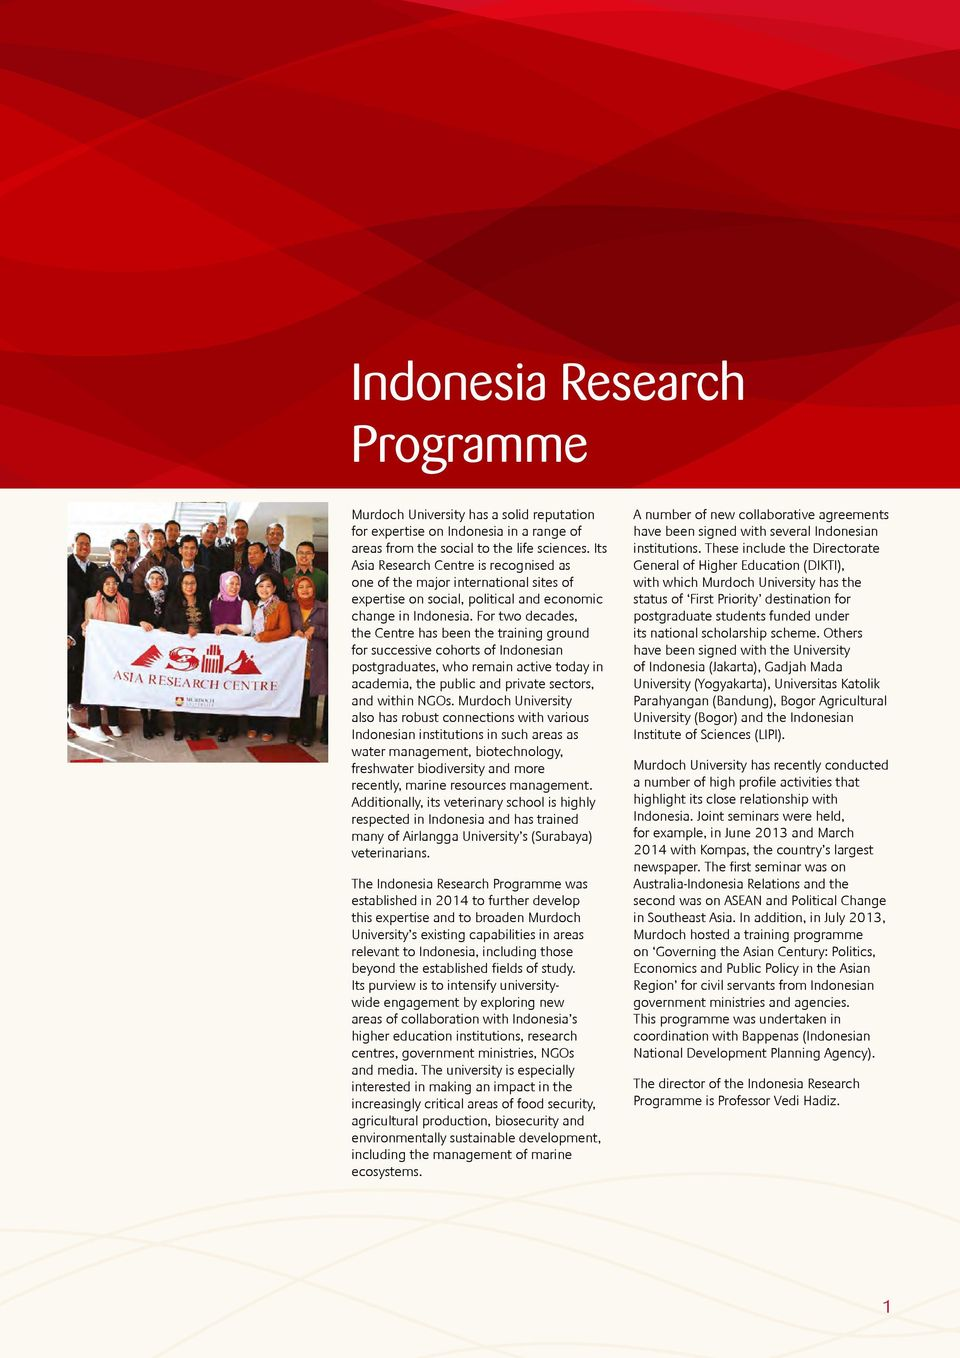 For two decades, the Centre has been the training ground for successive cohorts of Indonesian postgraduates, who remain active today in academia, the public and private sectors, and within NGOs.